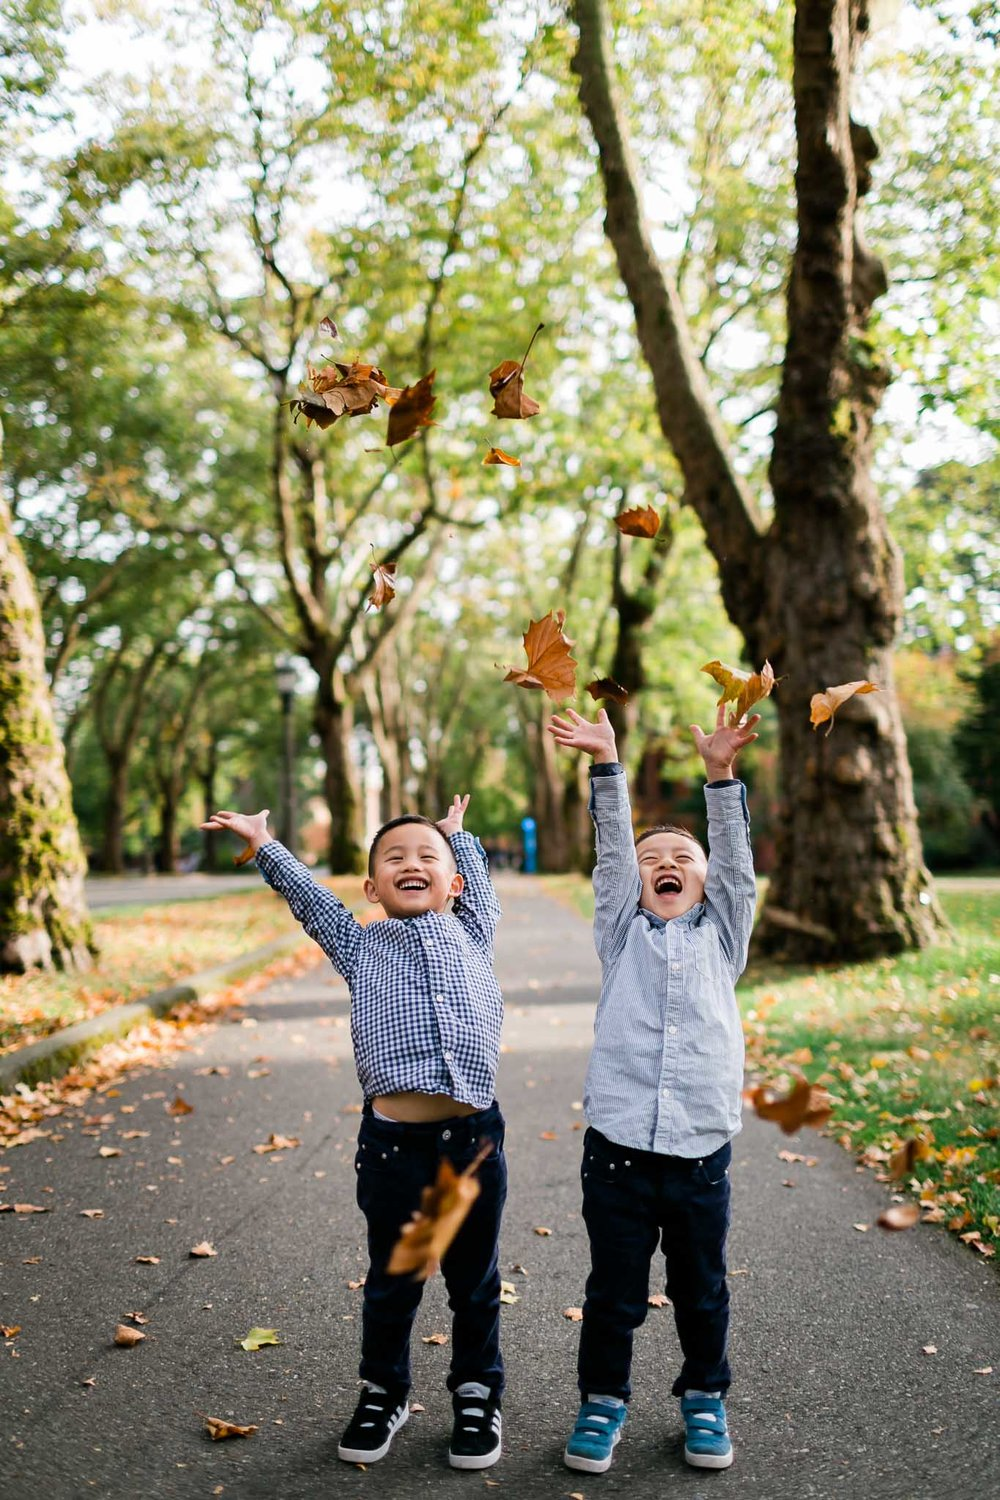 Children tossing leaves in the air at University of Washington, Seattle, WA | By G. Lin Photography | Durham Family Photography